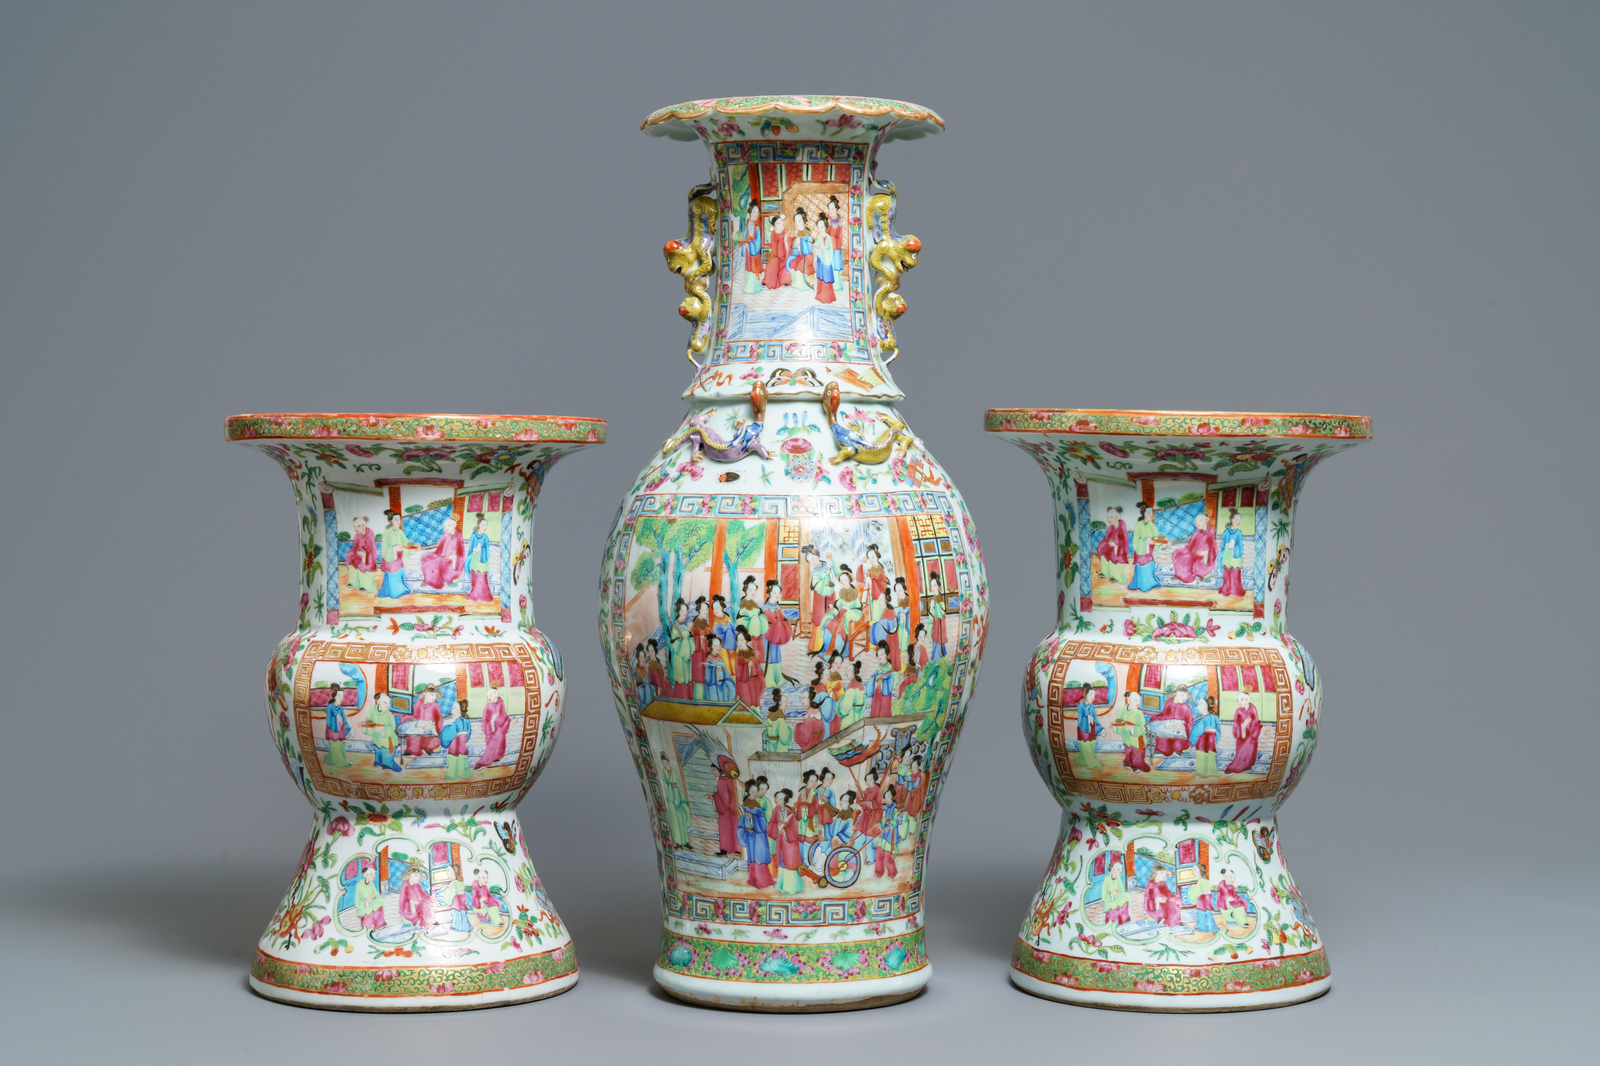 Lot 54 - A pair of Chinese Canton famille rose spittoons and a vase, 19th C.